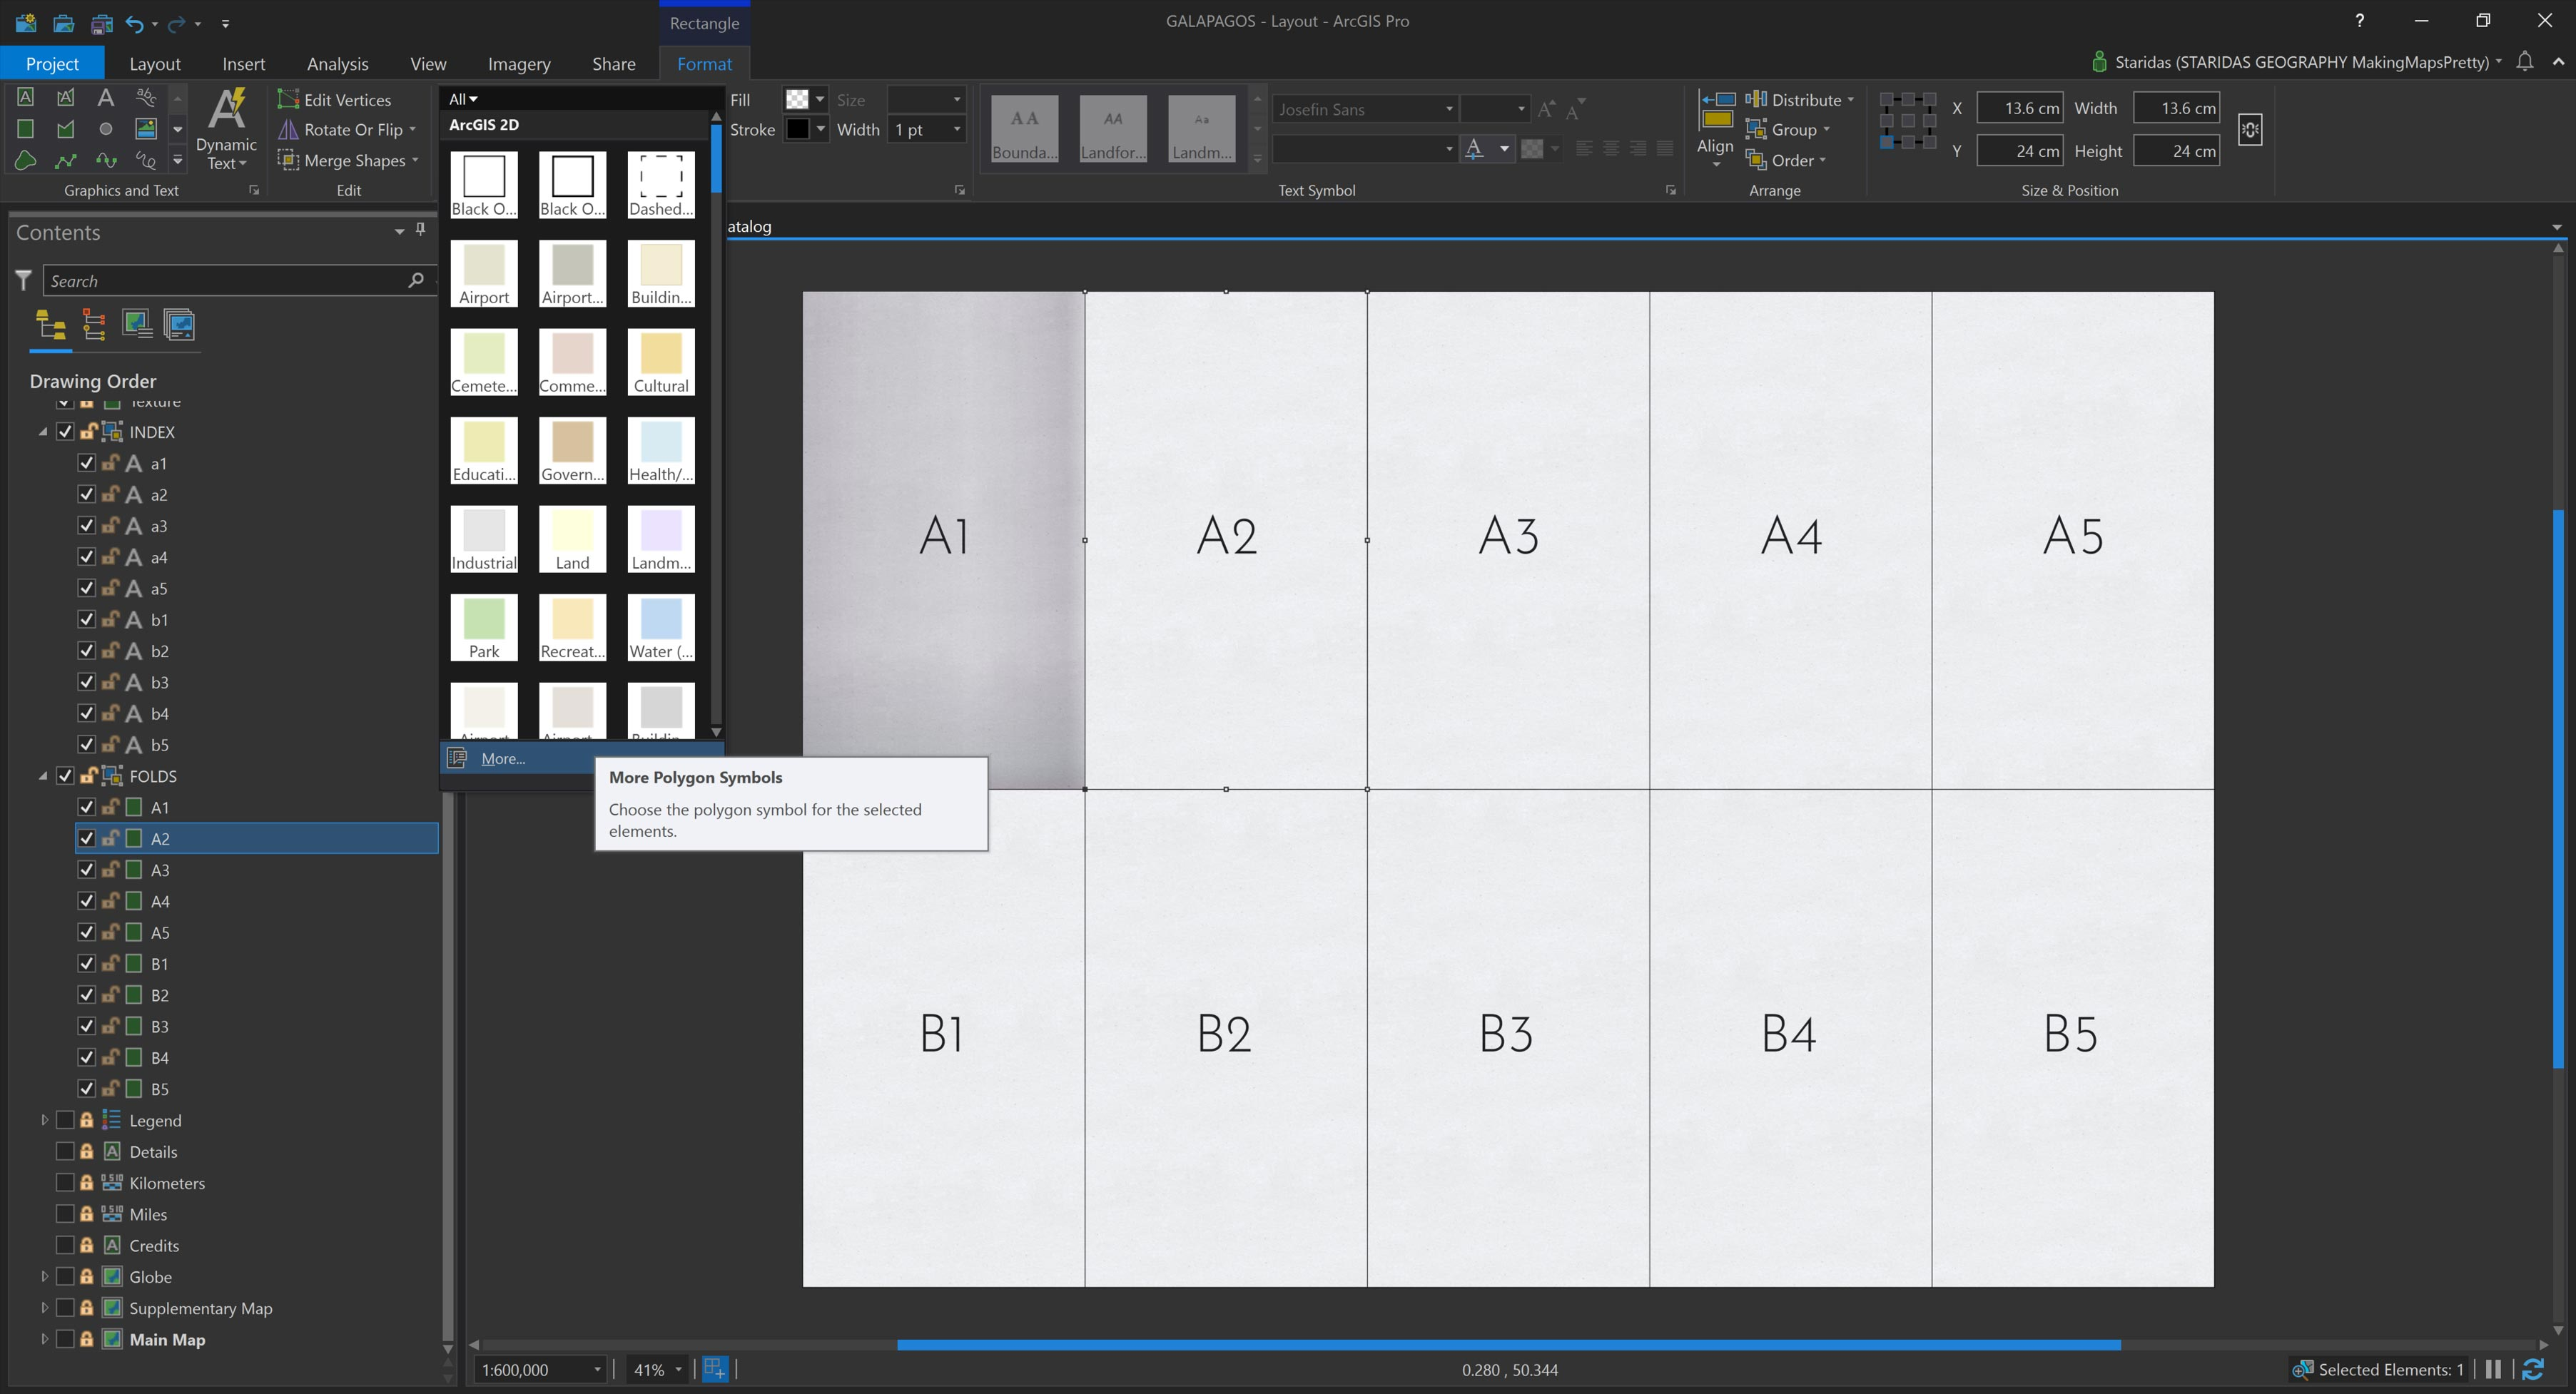 Picture 8: Symbolizing each graphic rectangle with its correspondent symbol from the ArcGIS Pro Style file.